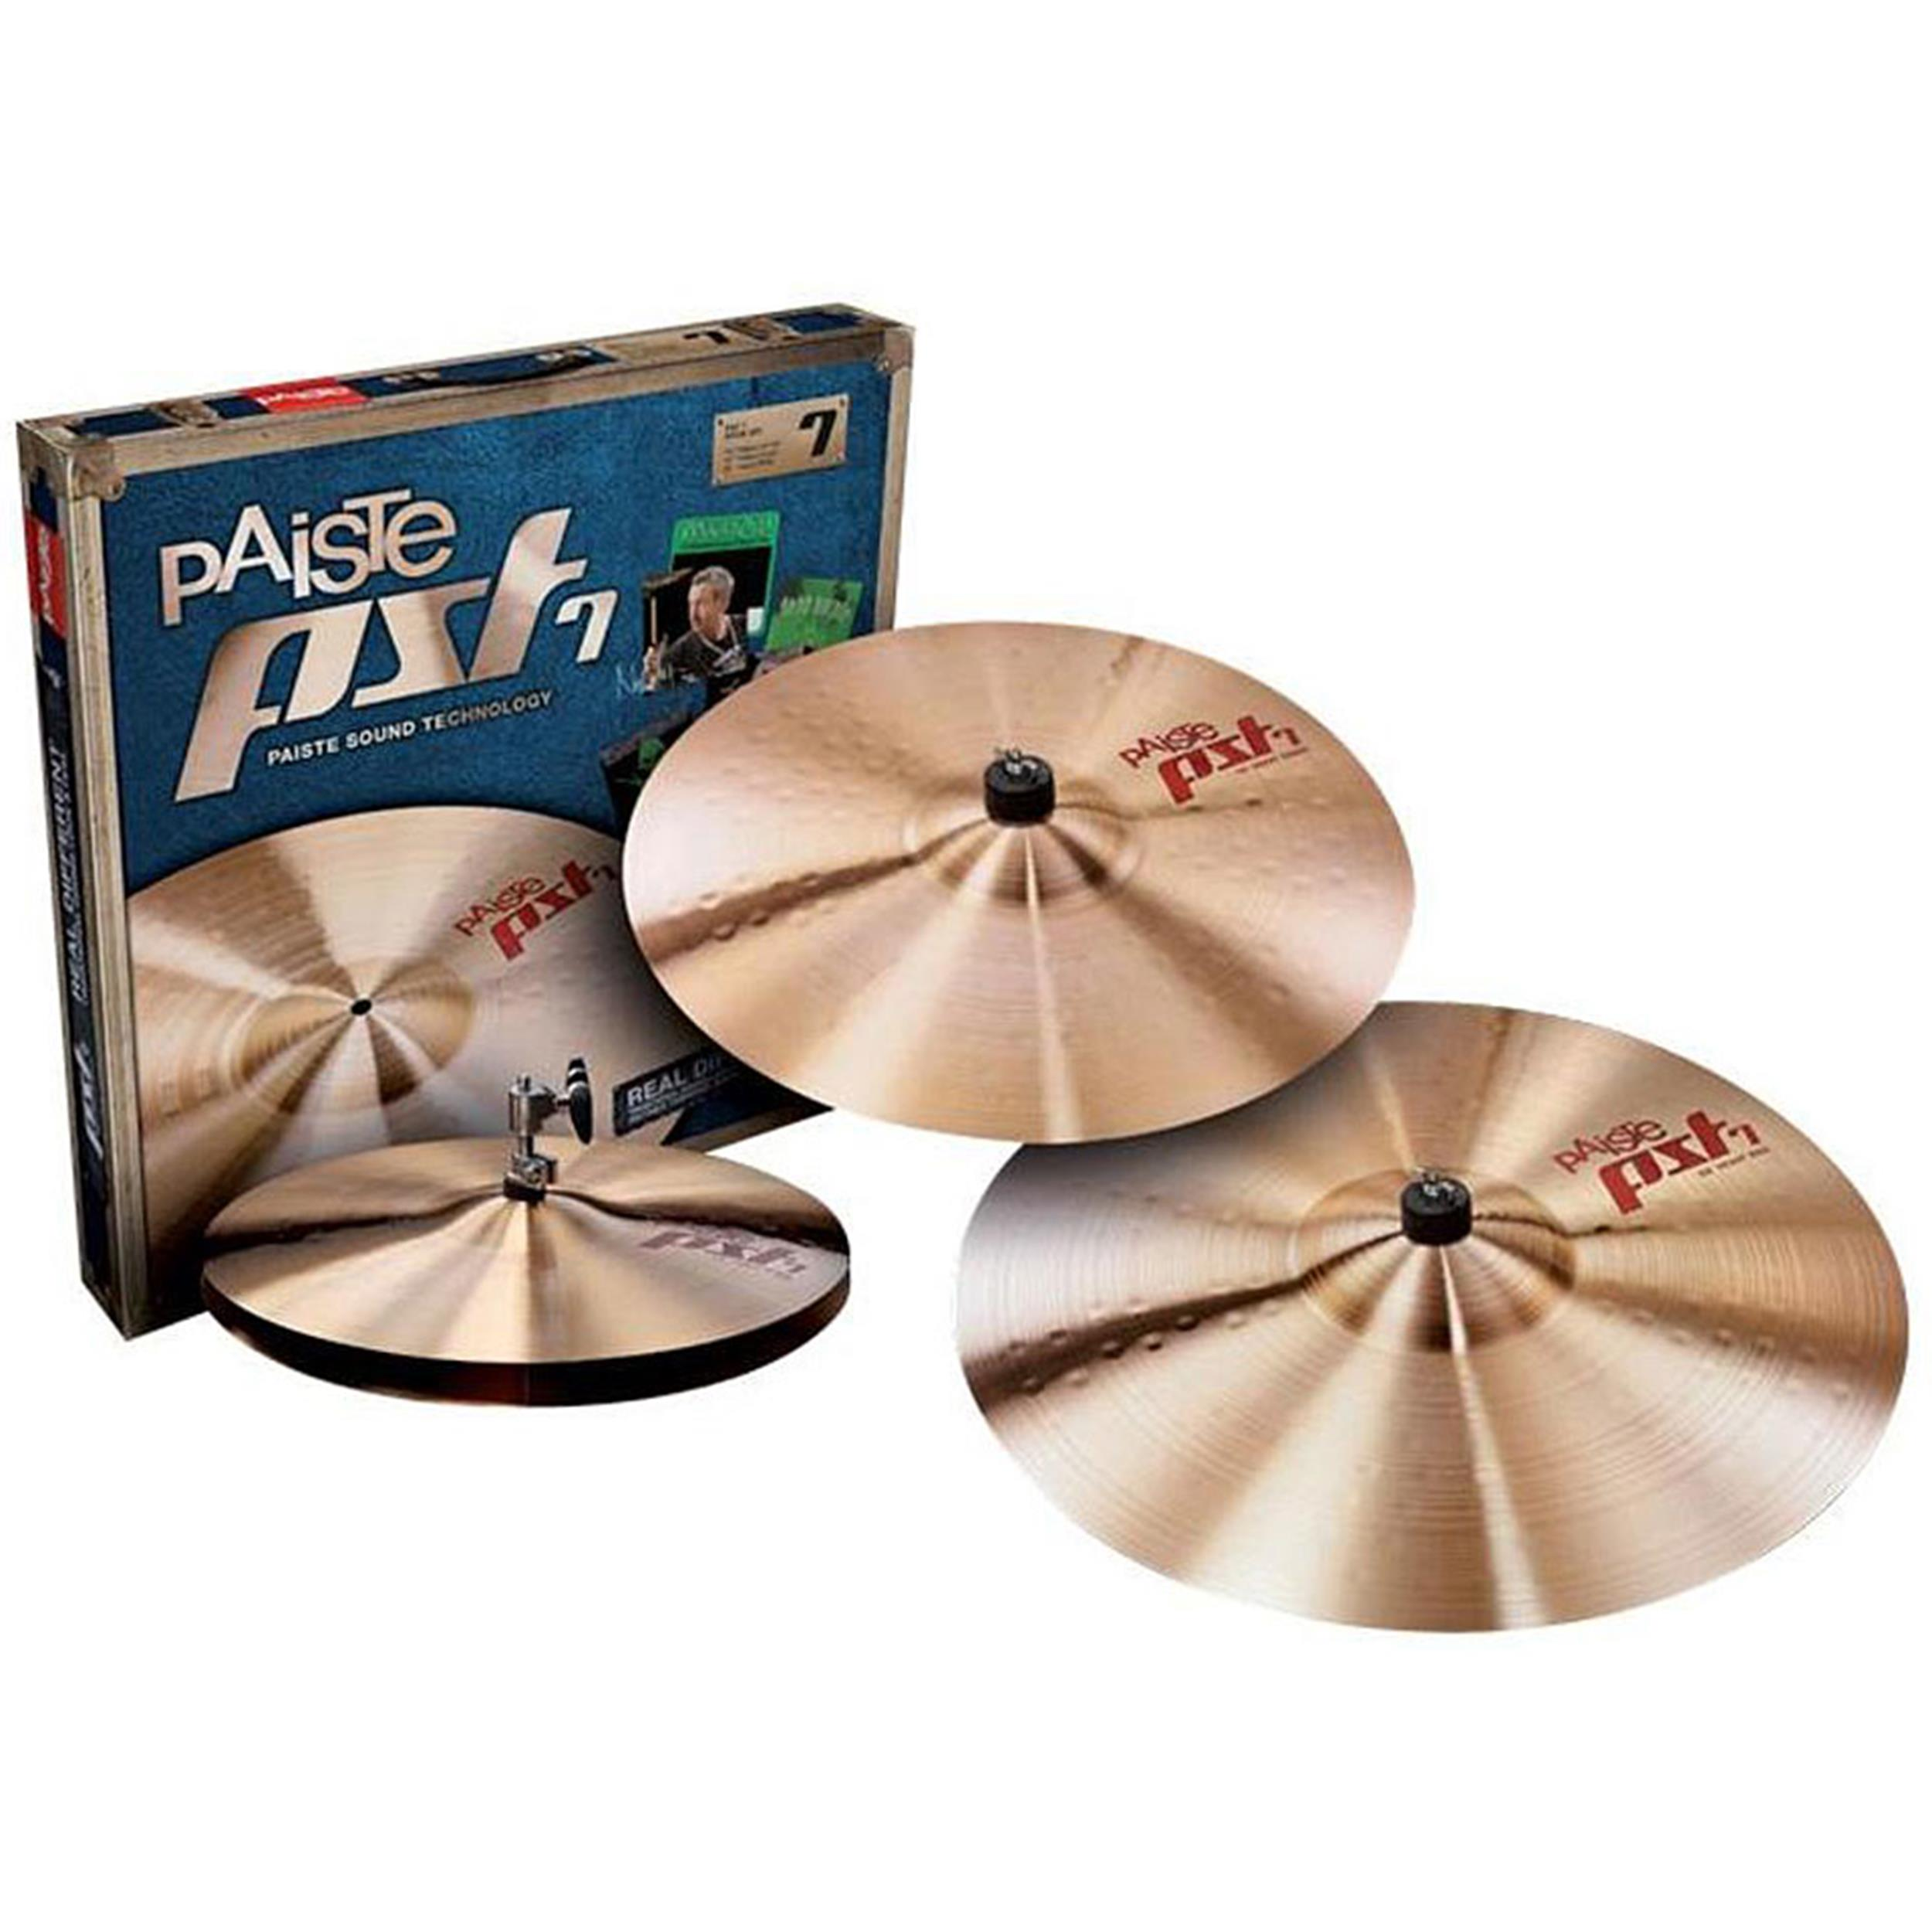 PAISTE PST7 MEDIUM UNIVERSAL SET 14HH + 16CR + 20RD